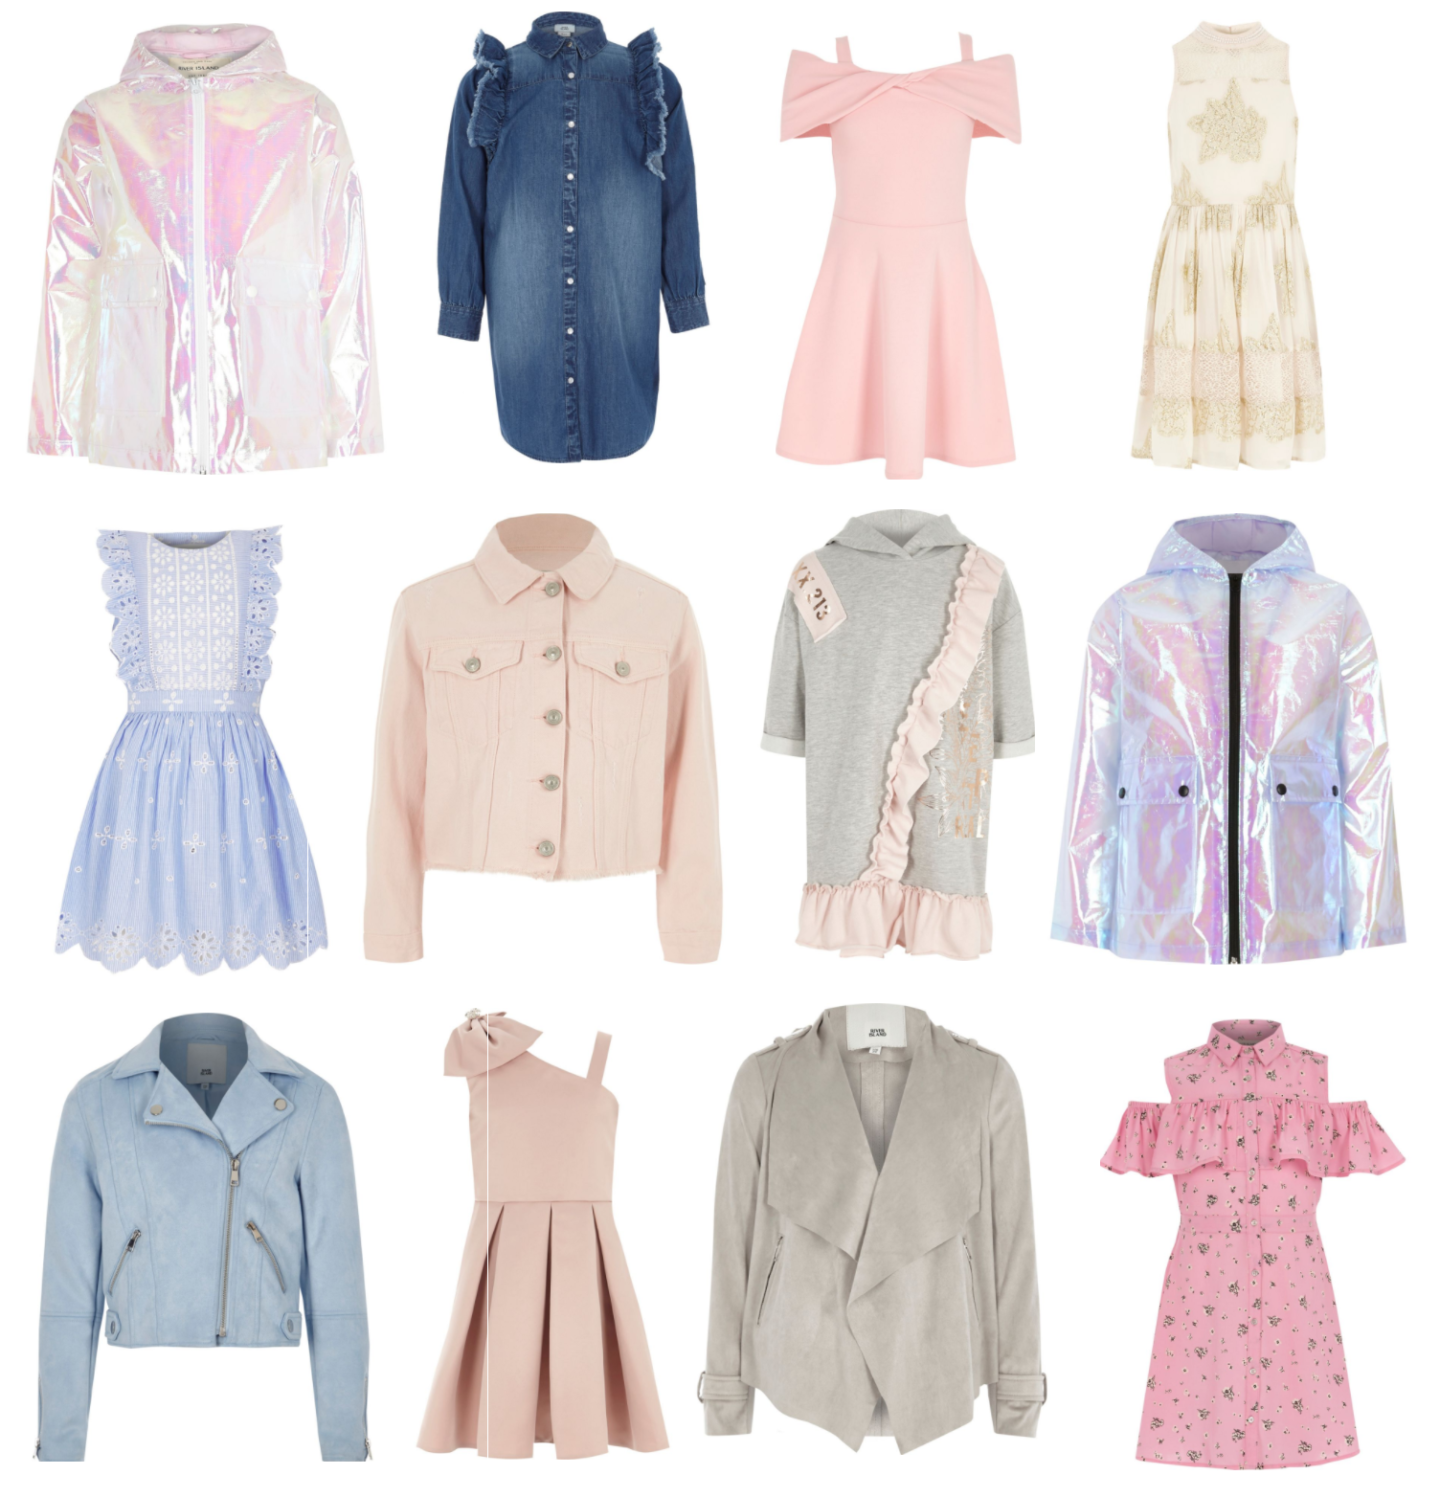 River Island | Adorable Girl's Coats & Dresses for all Occasions #AD